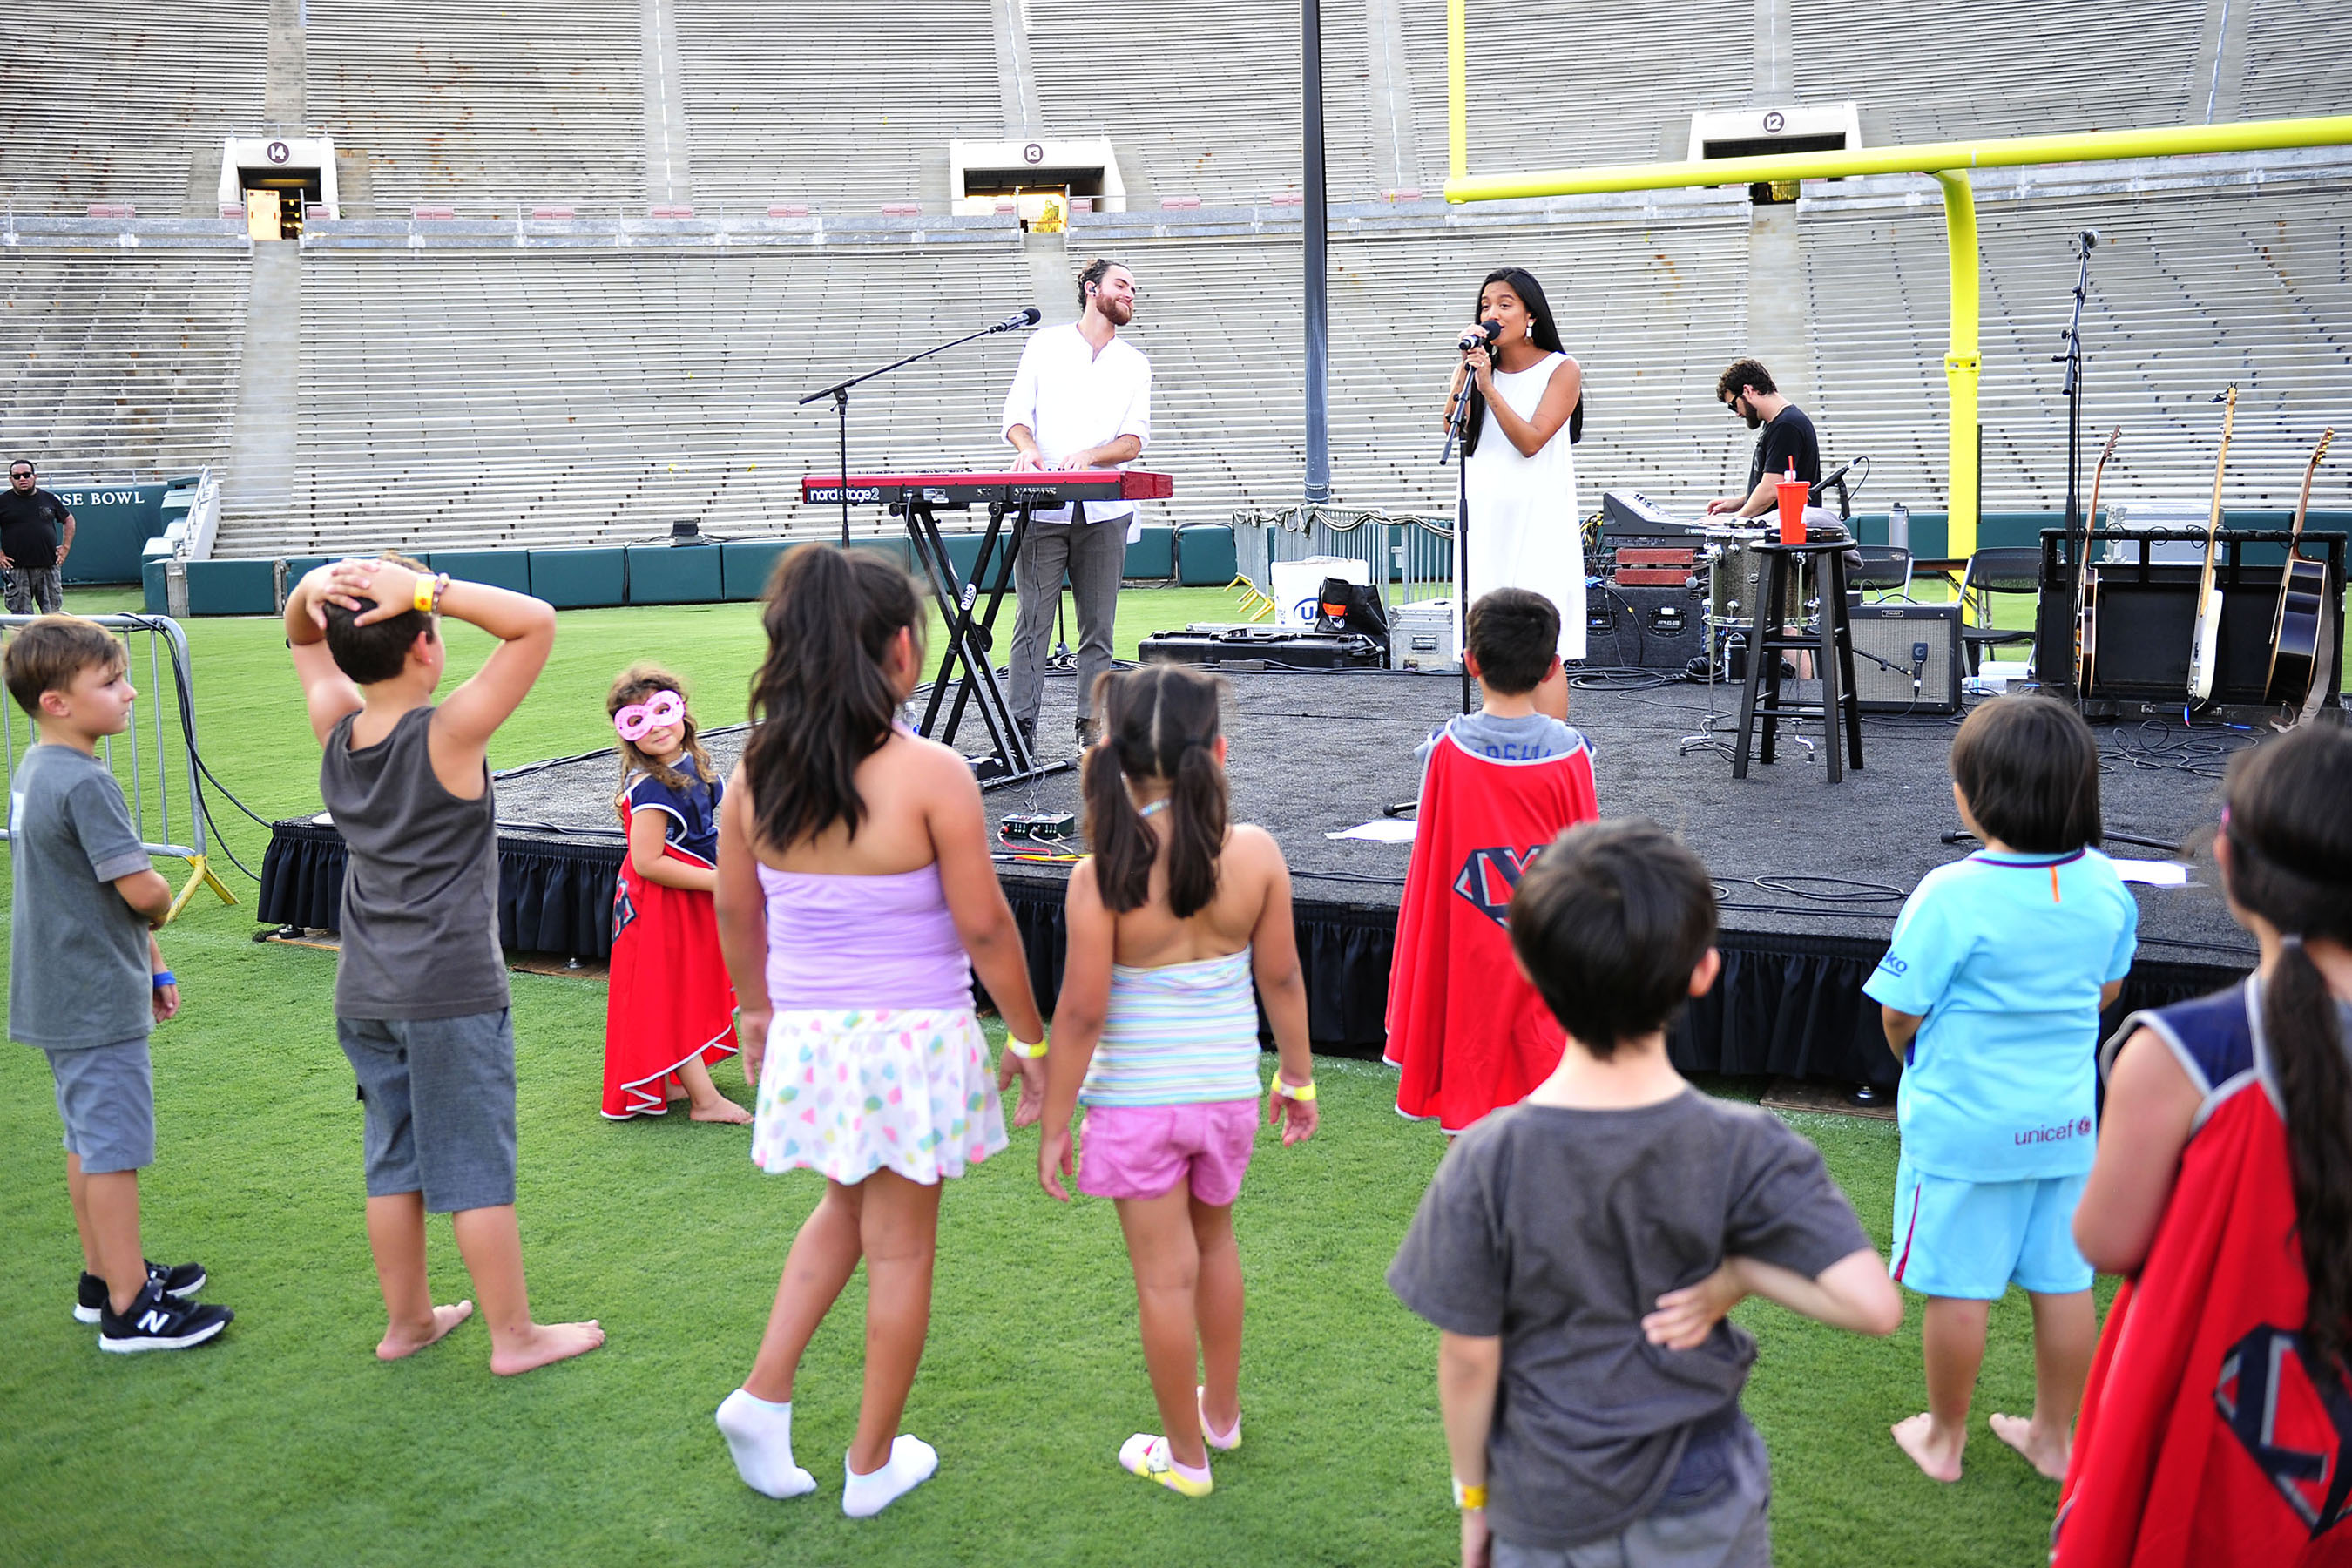 Us the Duo performs for families affected by childhood cancer at Campout on the Field, an event co-hosted by Northwestern Mutual, the Rose Bowl Stadium and Rose Bowl Legacy Foundation.